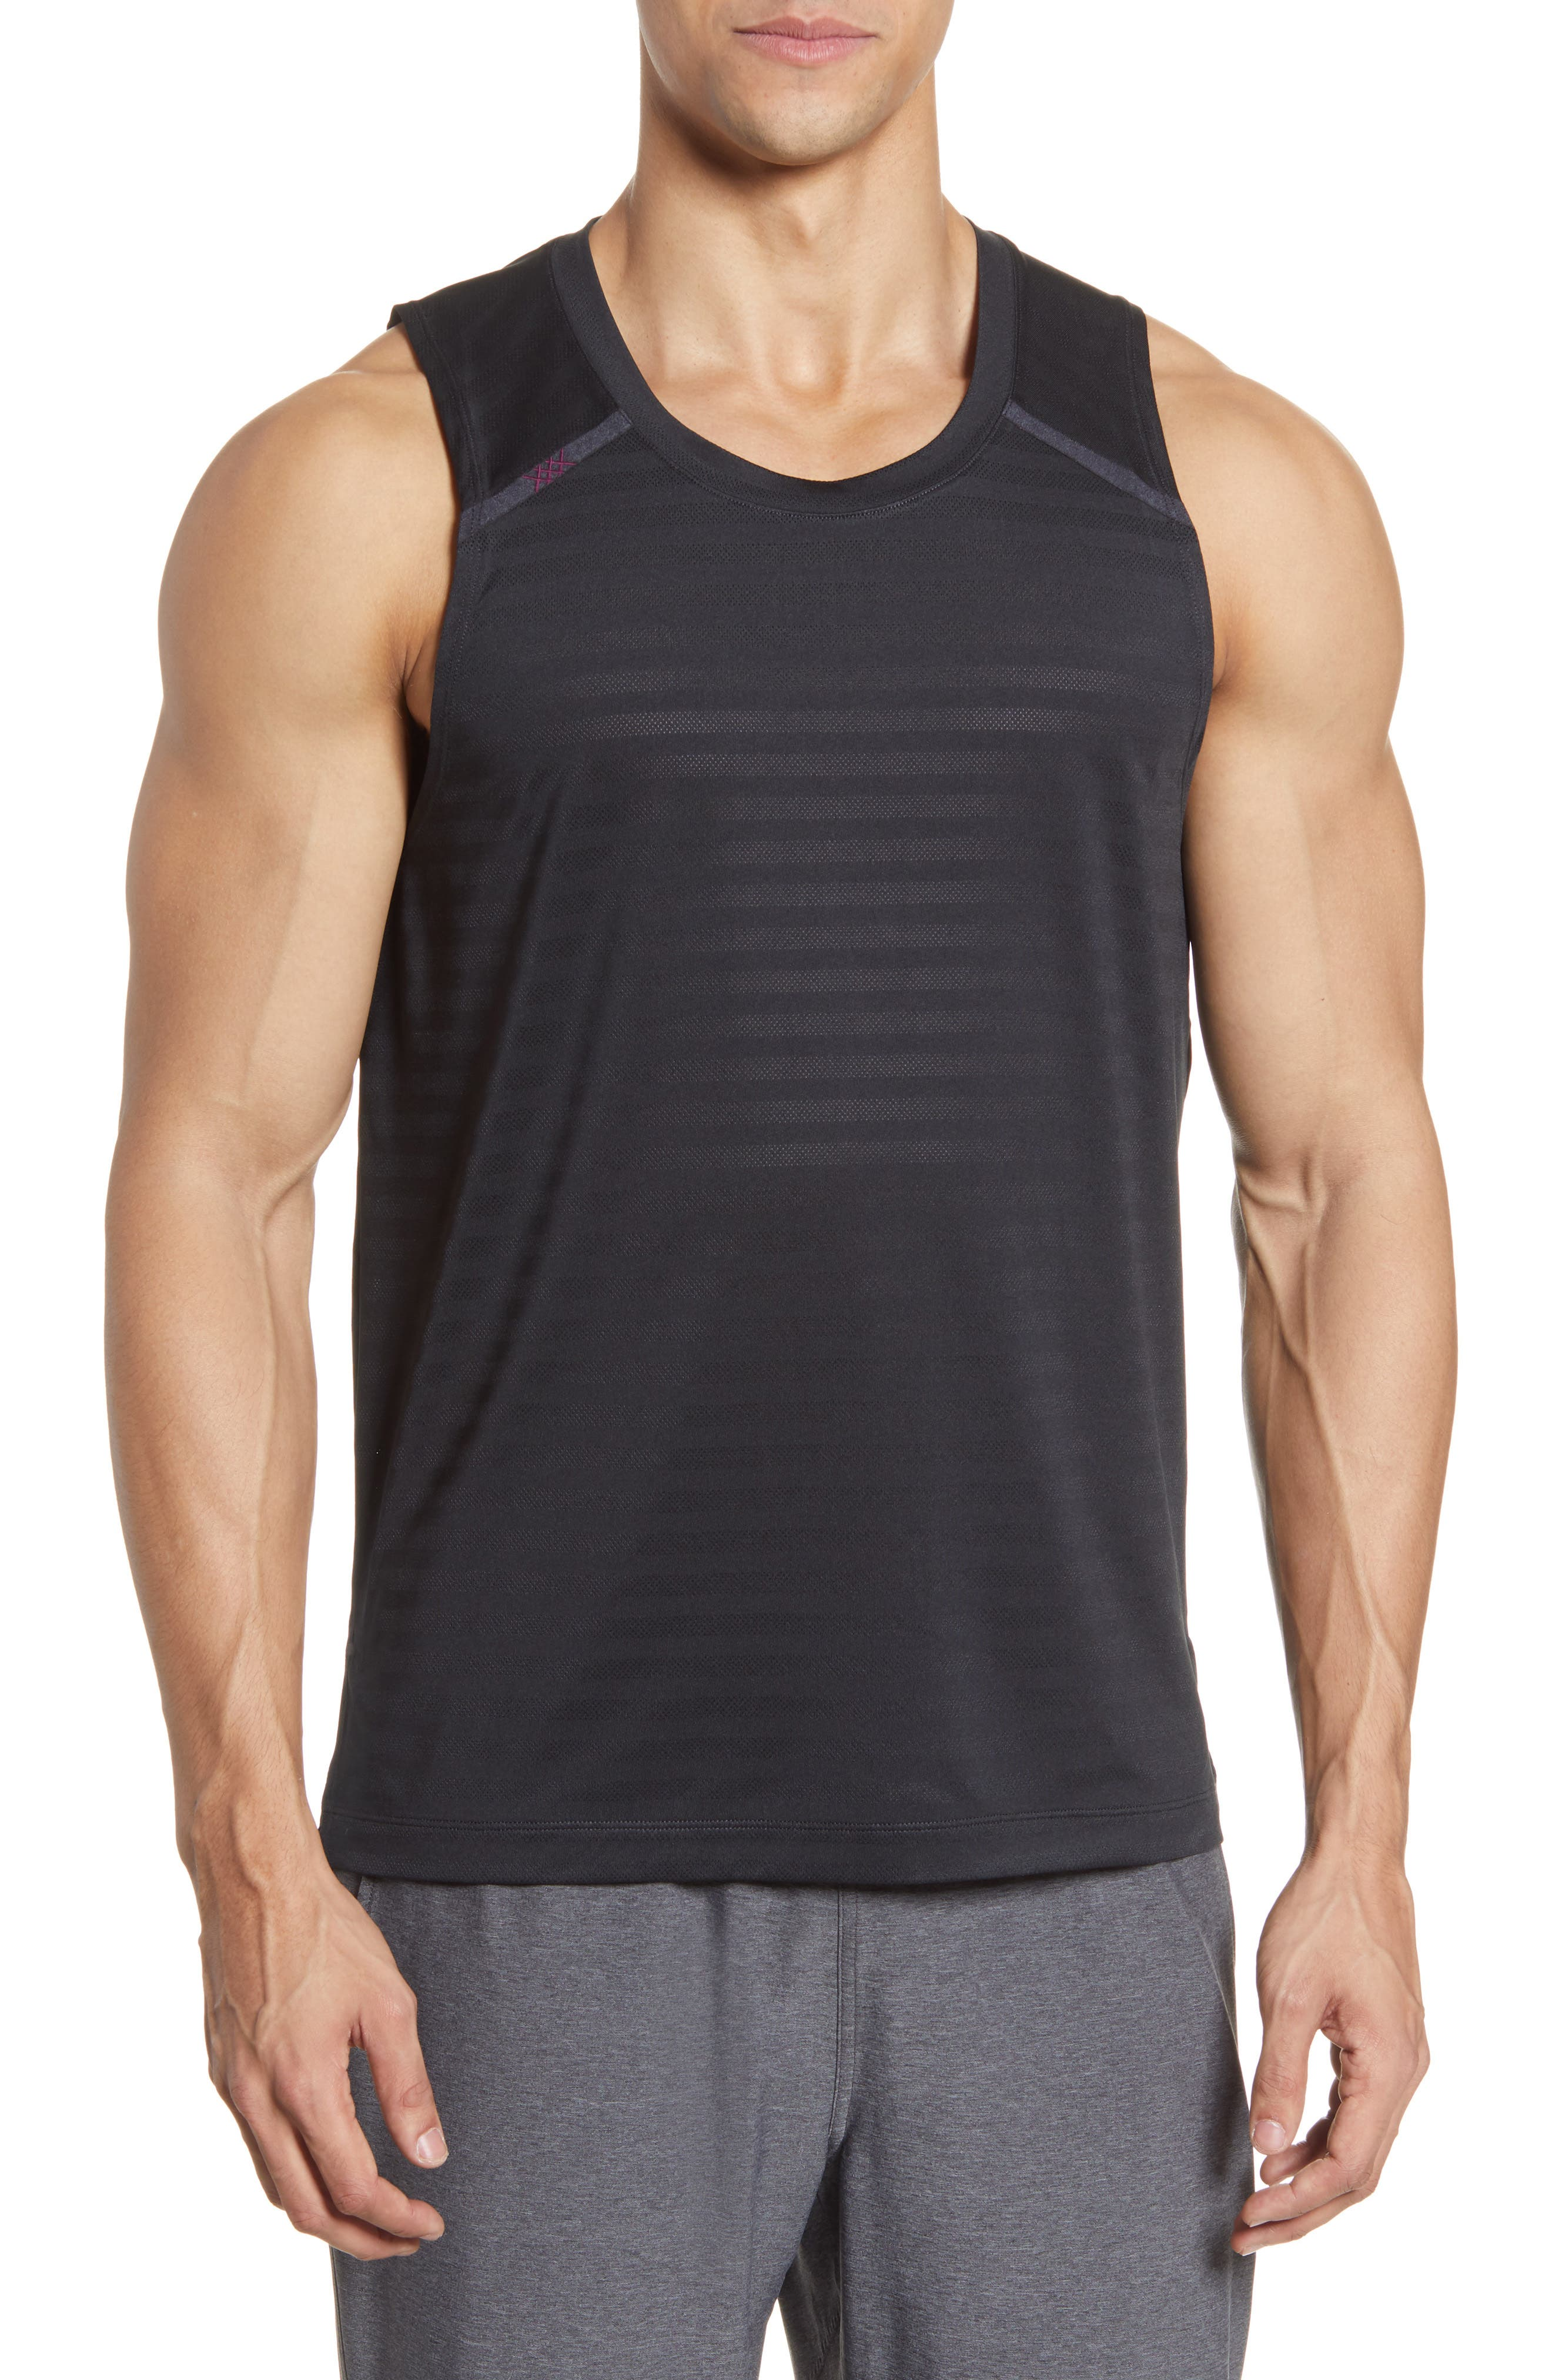 Stretchy, moisture-wicking mesh keeps up at any intensity in an all-activity tank that dries quickly and resists odors to keep you fresh and comfortable. Style Name: Rhone Swift Performance Tank. Style Number: 6036438. Available in stores.